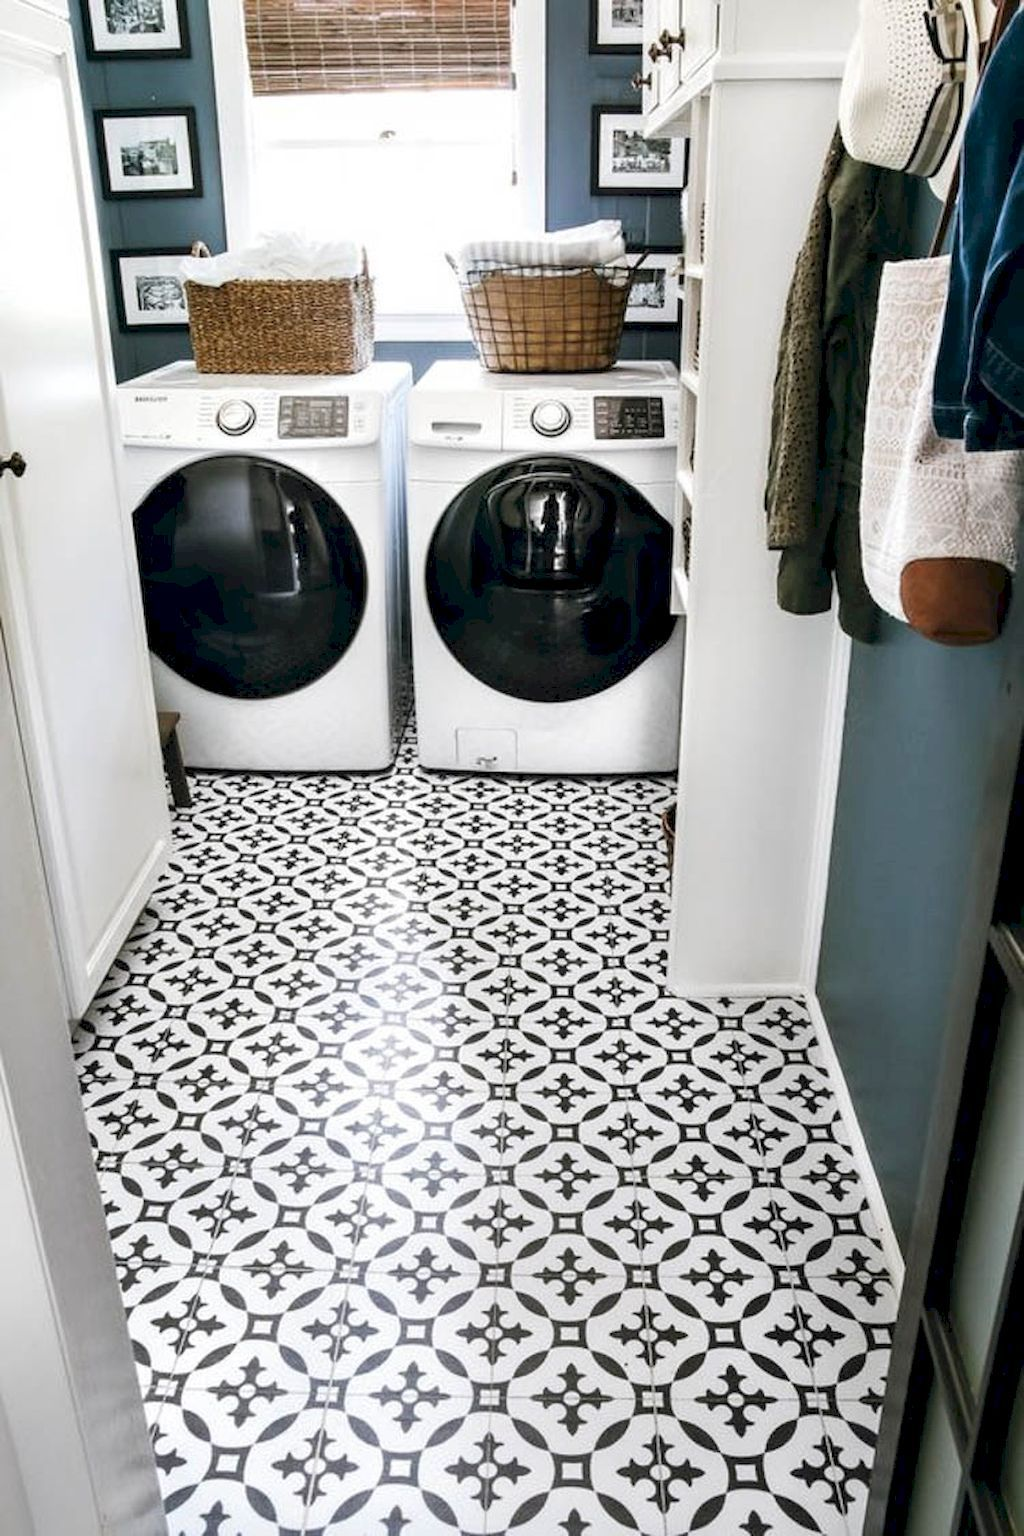 Farmhouse Laundry Room Floor 70 Modern Farmhouse Laundry Room Decor Ideas Farmhouse